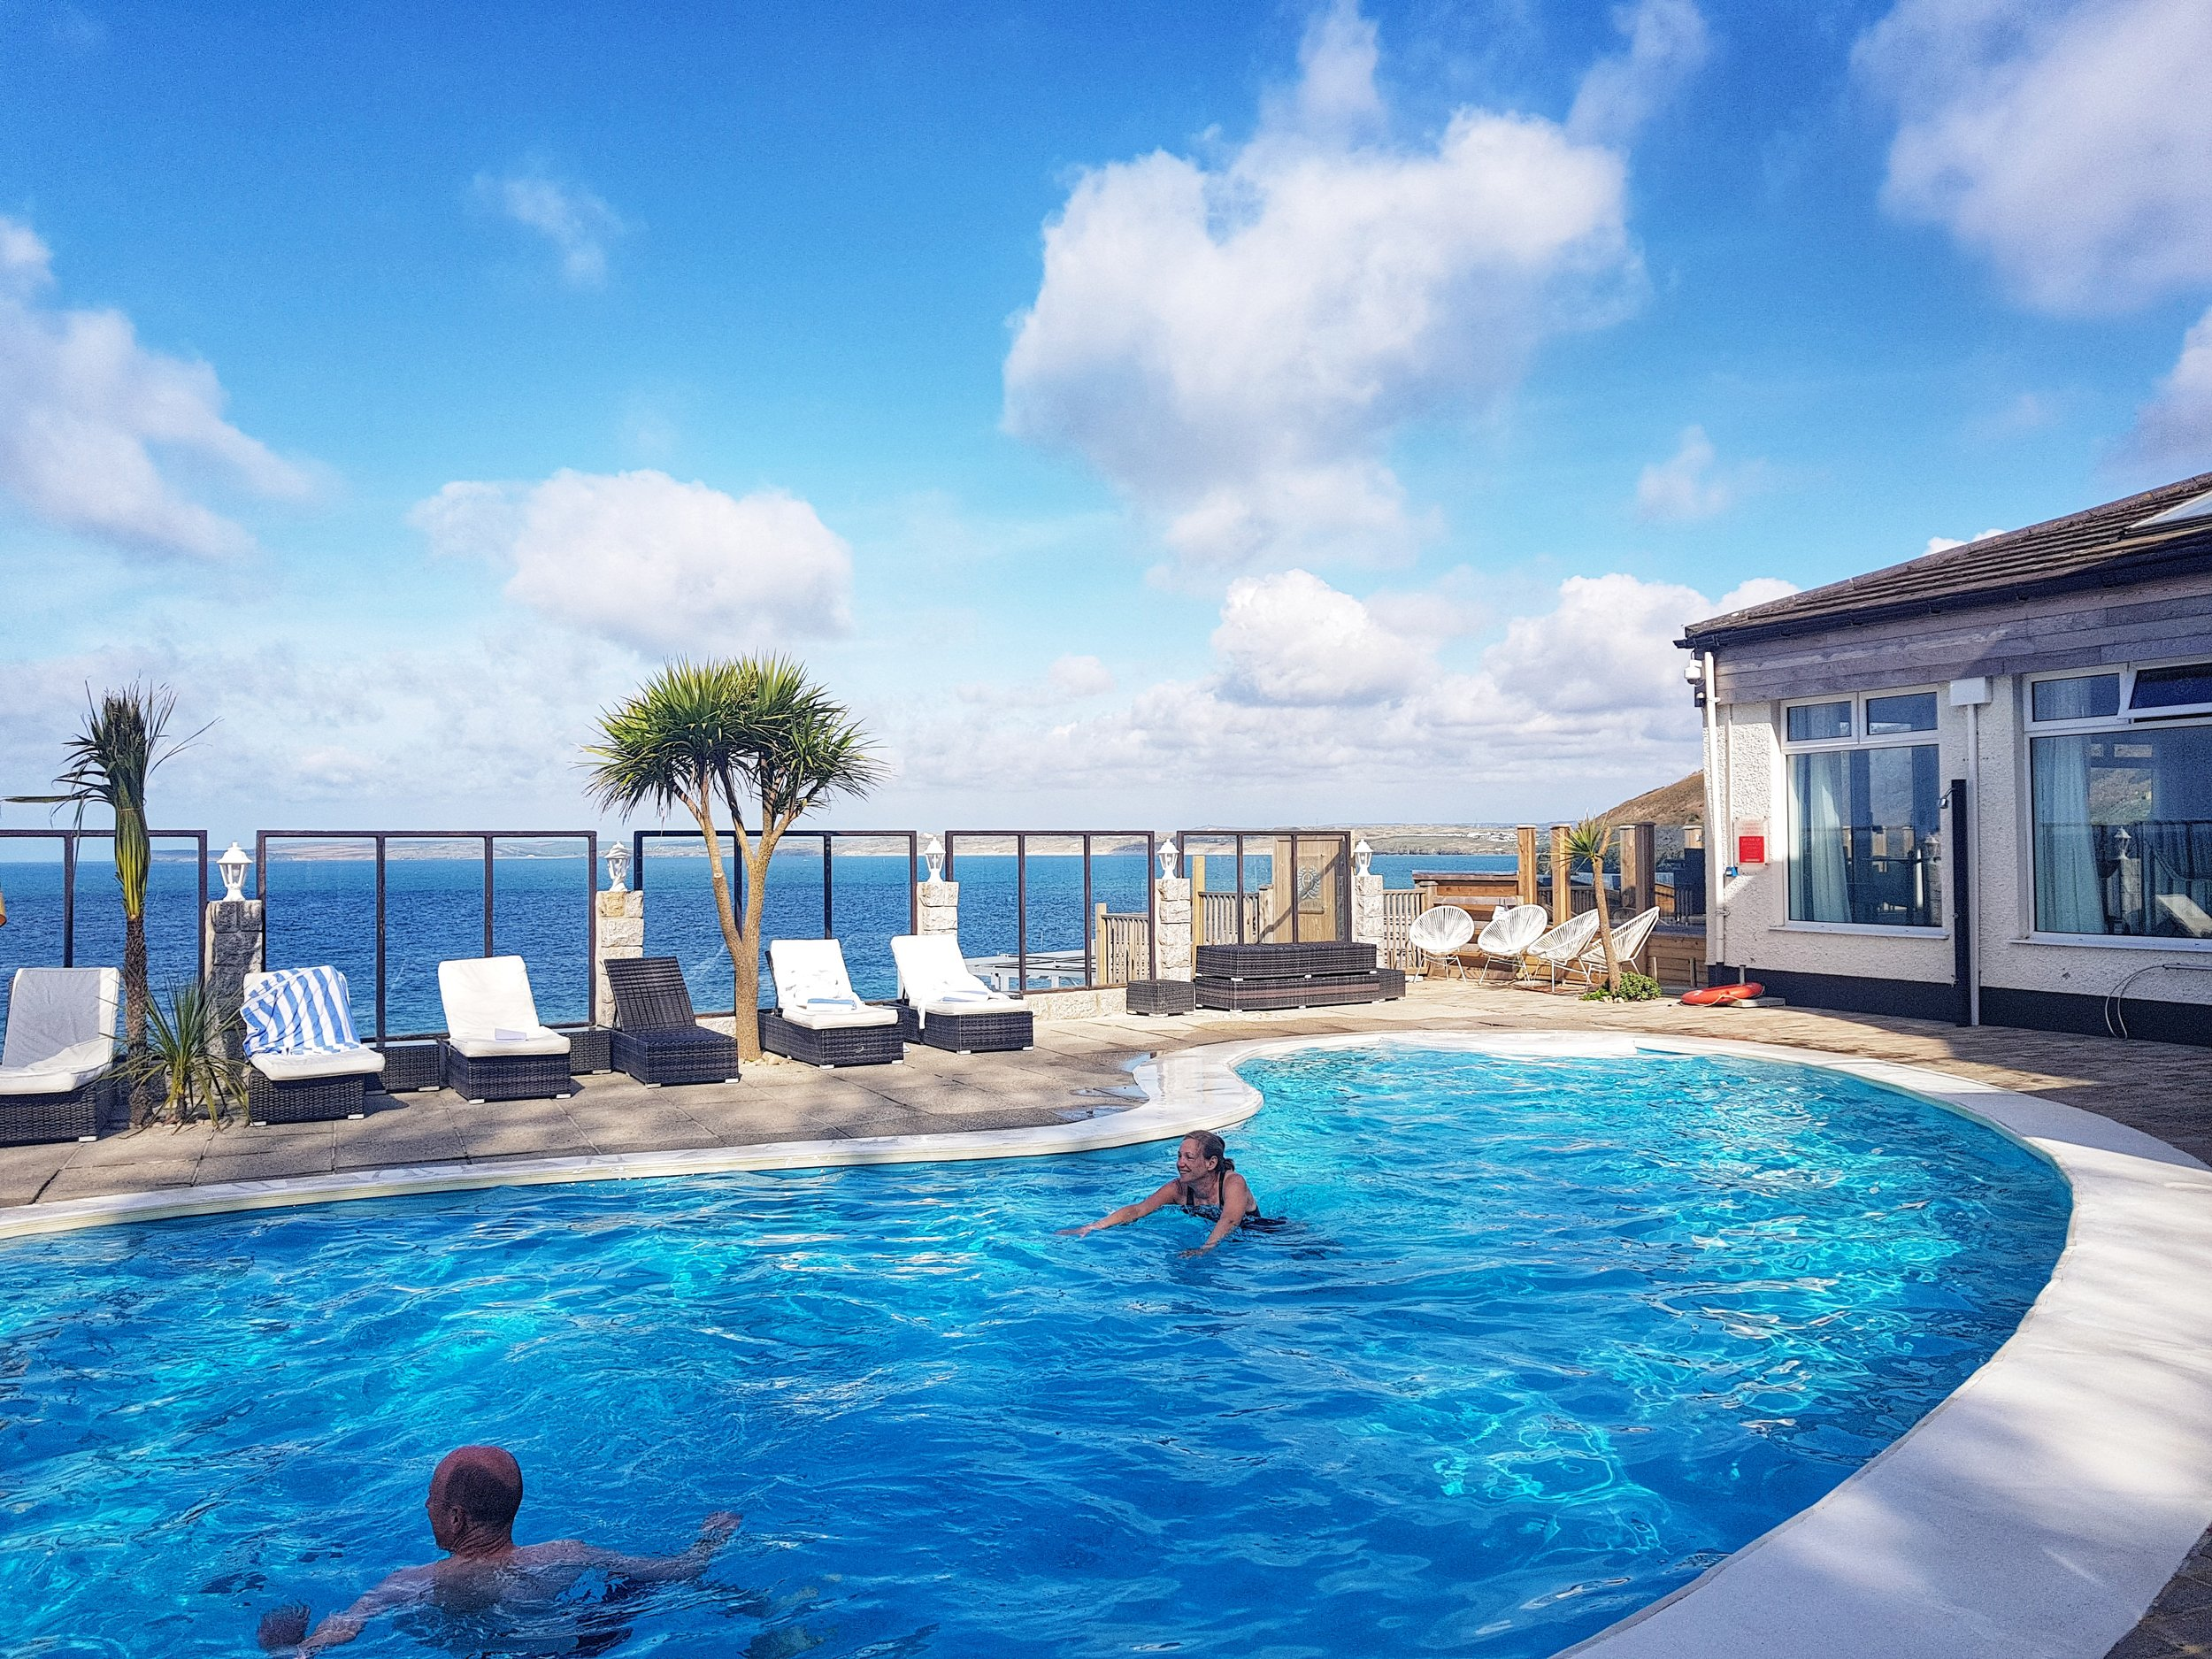 CARBIS BAY HOTEL CORNWALL REVIEW